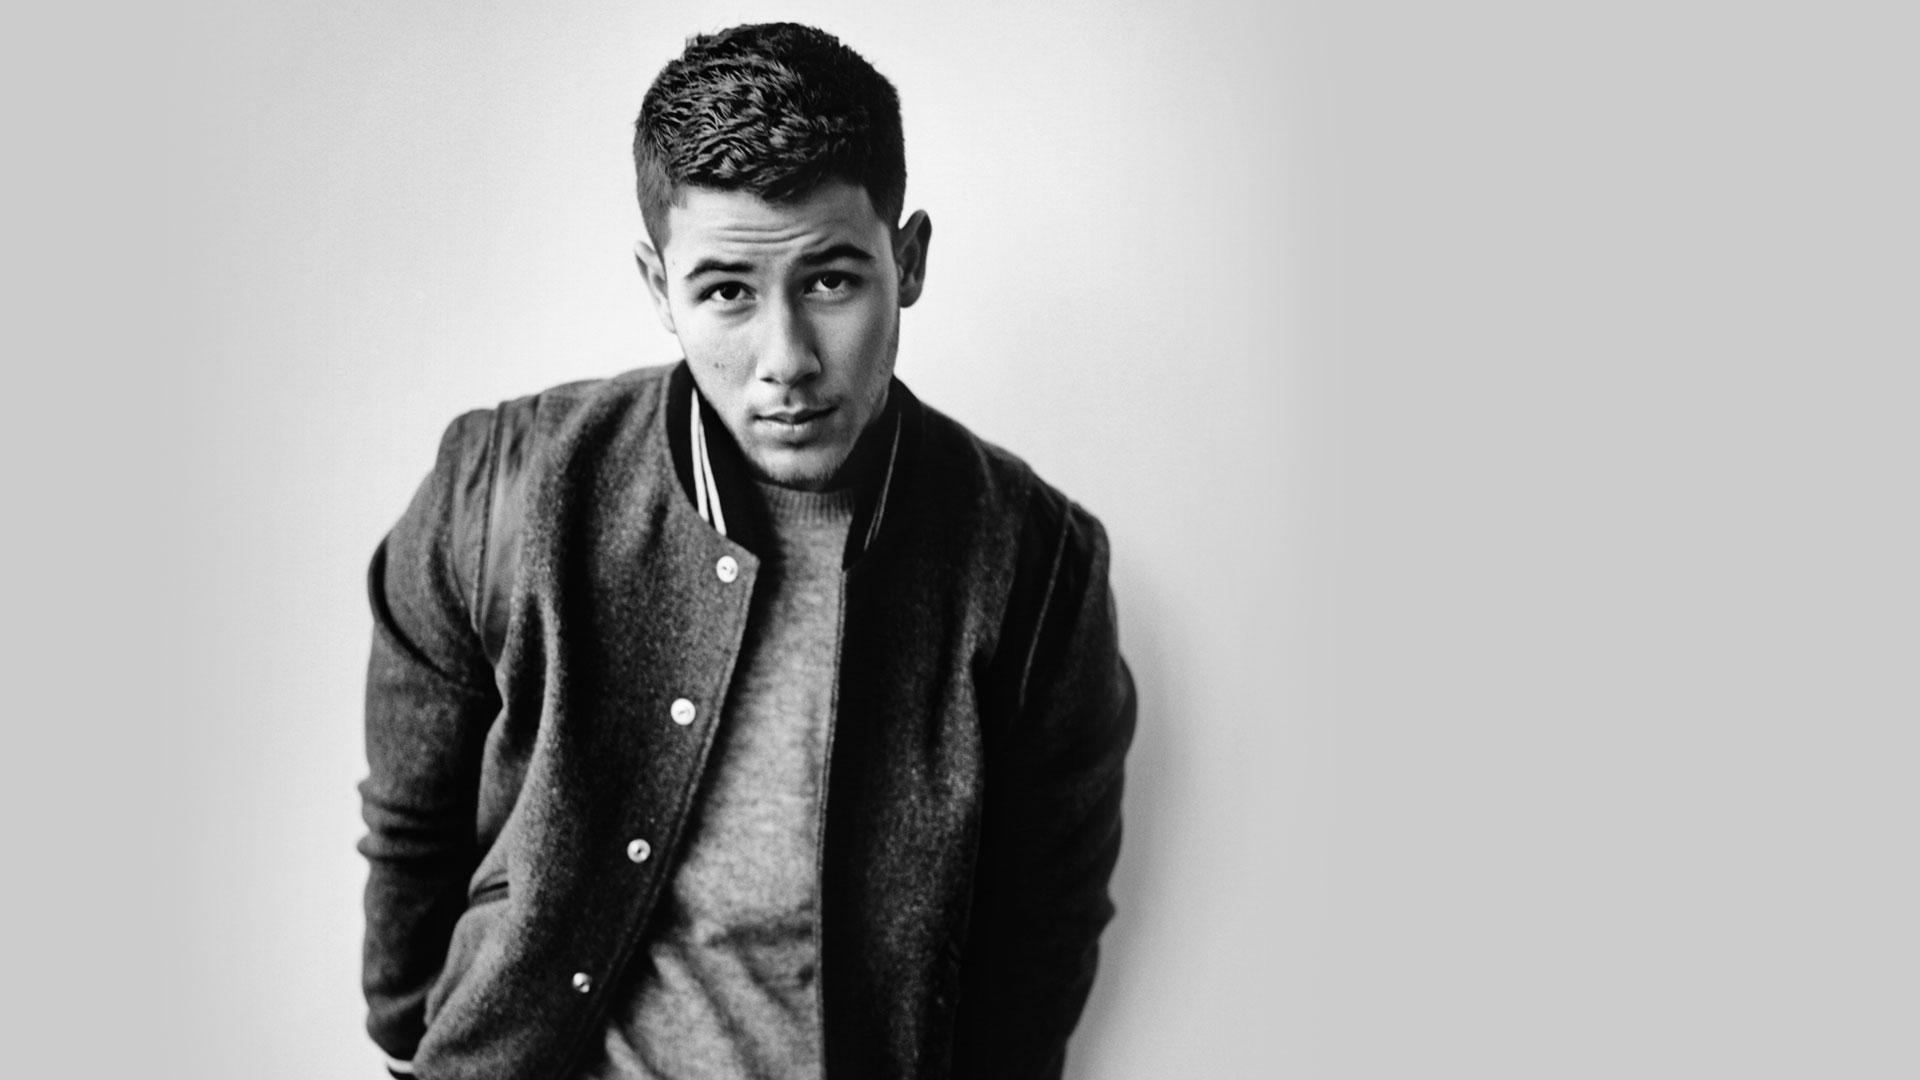 Nick Jonas Wallpaper (44 Wallpapers) – HD Wallpapers